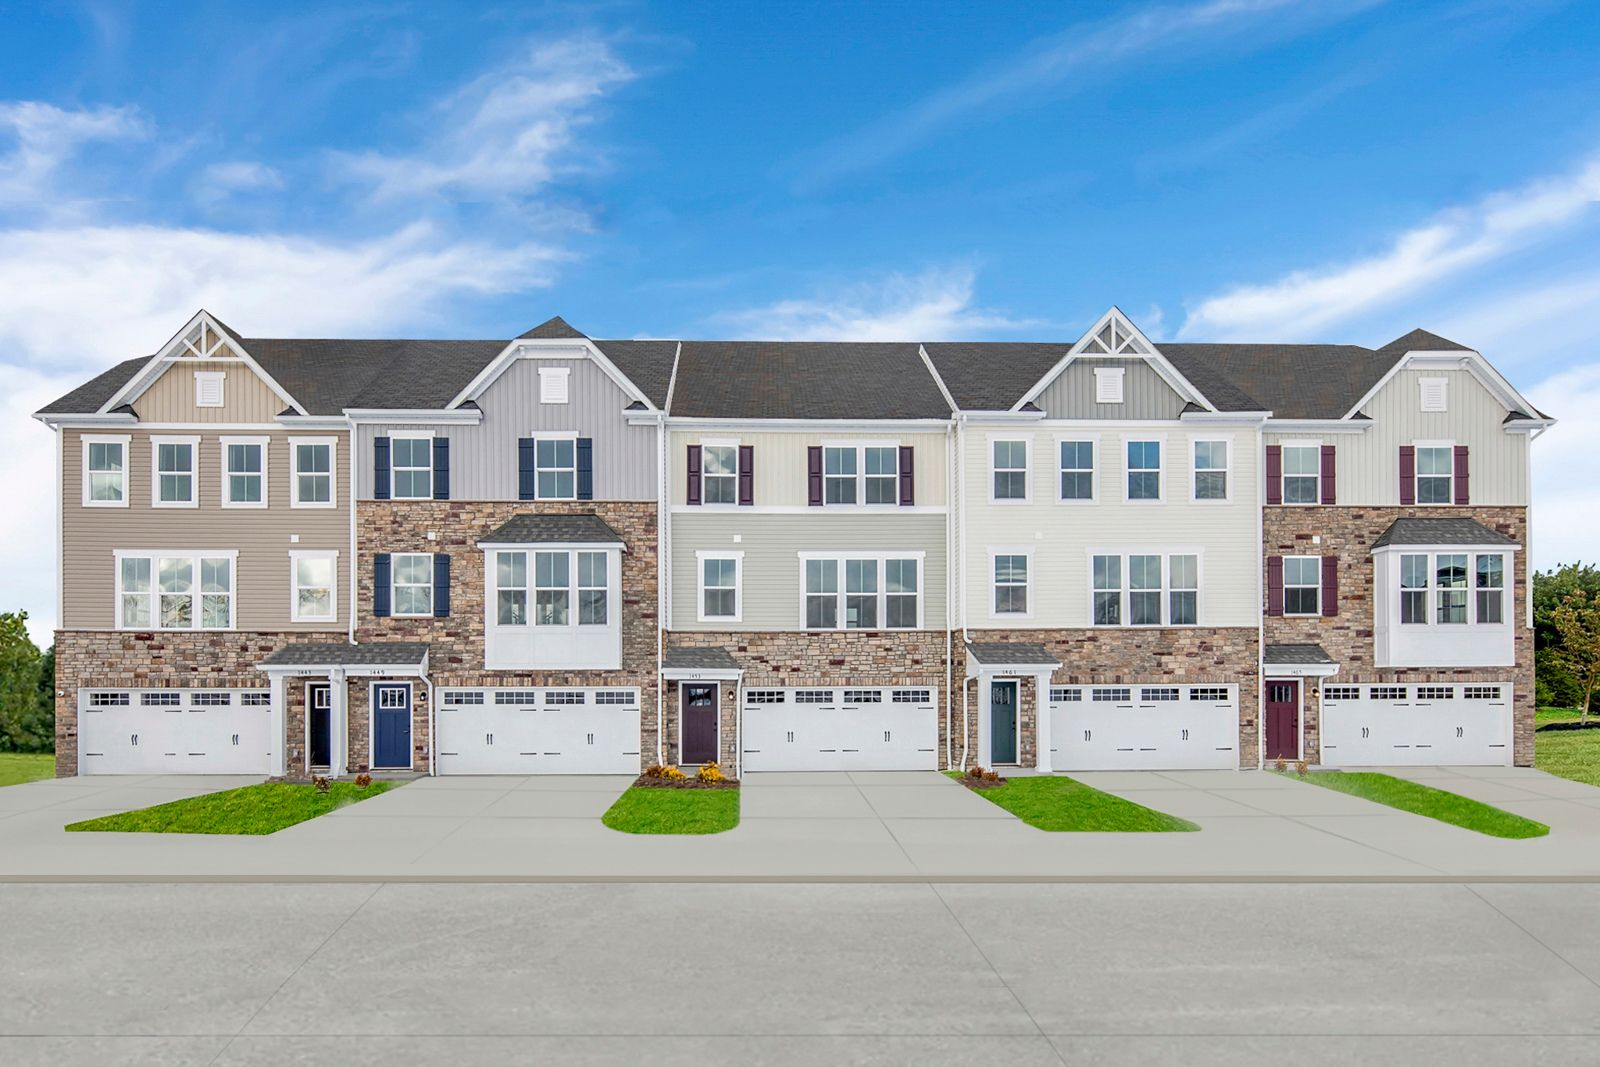 Welcome to Richmont Townhomes:The only new townhomes in Fox Chapel Schools with open floorplans, upgraded finishes & two car garages with great access to 28 & the PA Turnpike.Click heretoschedule your appointment.